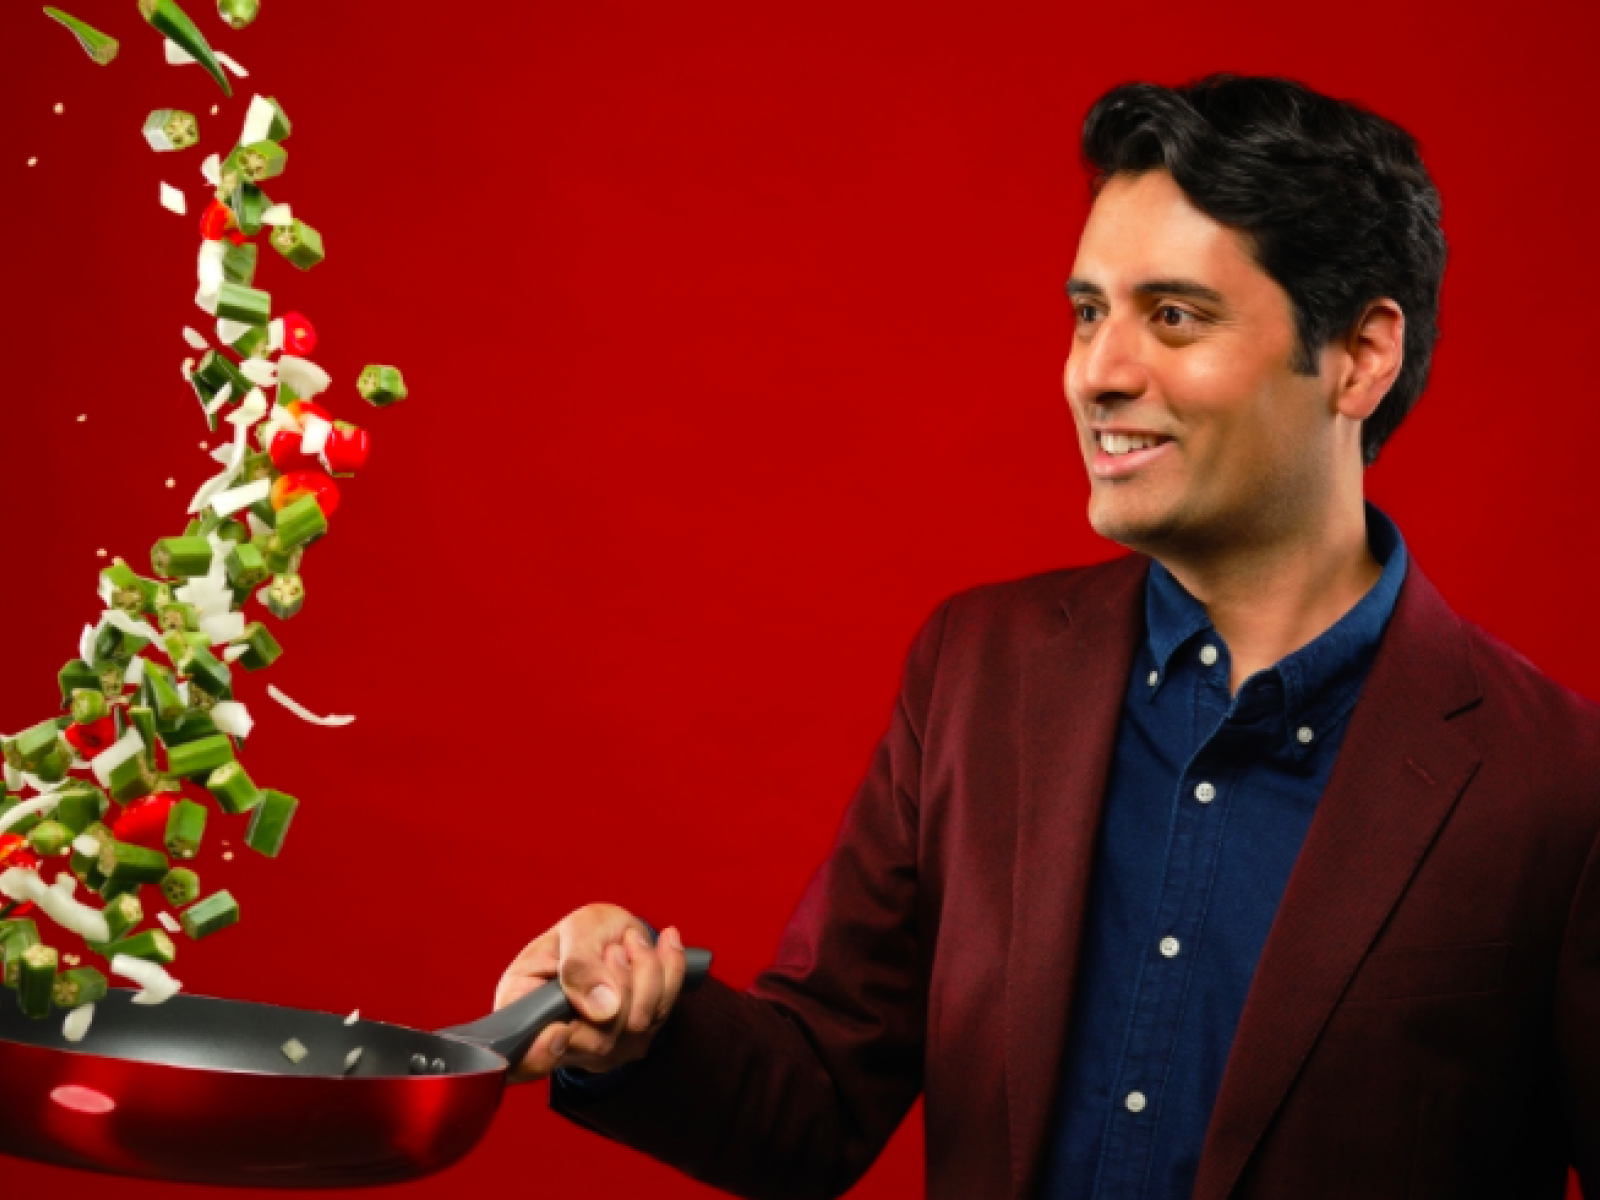 Main image for event titled Bollywood Kitchen at the Geffen Stayhouse (OPENING NIGHT)